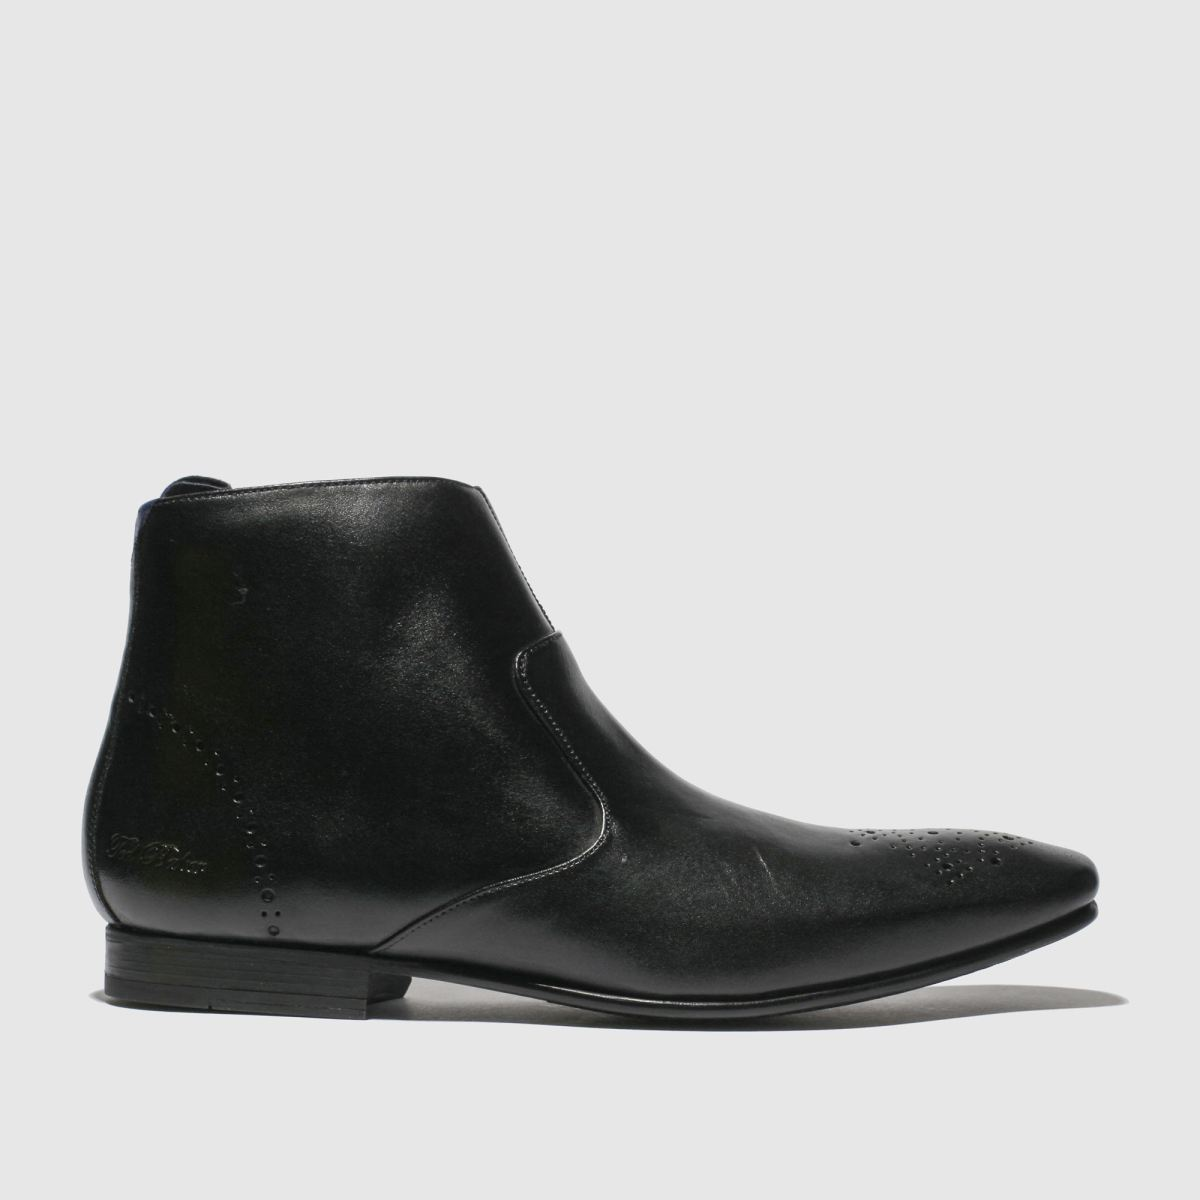 Ted Baker Black Visthh Boots